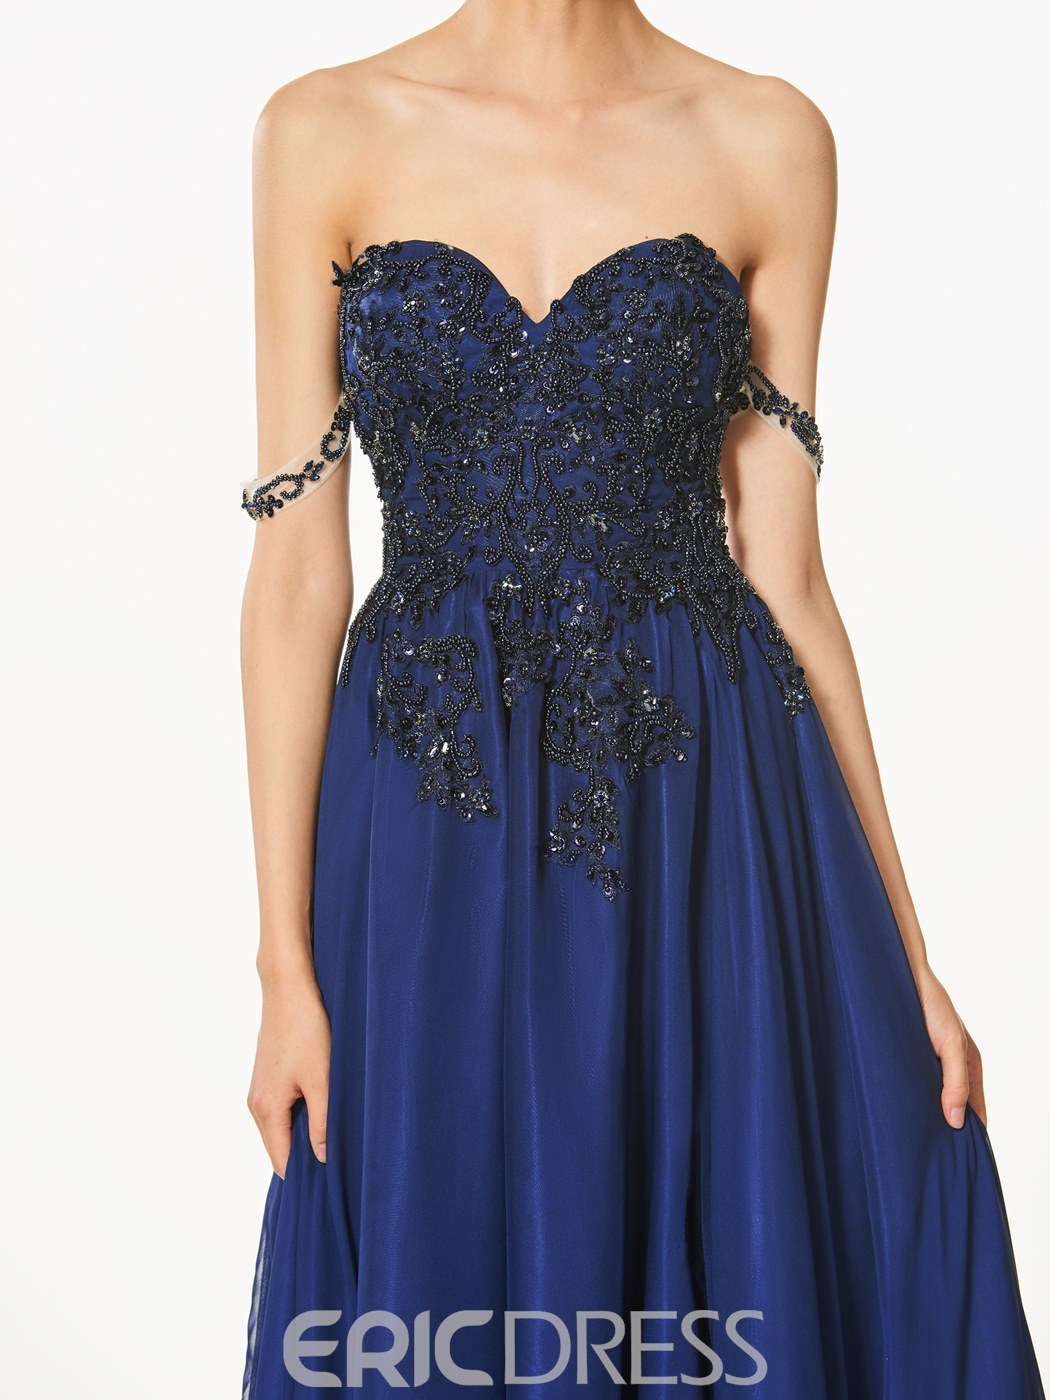 Ericdress A-Line Sweetheart Appliques Split-Front Prom Dress With Beading